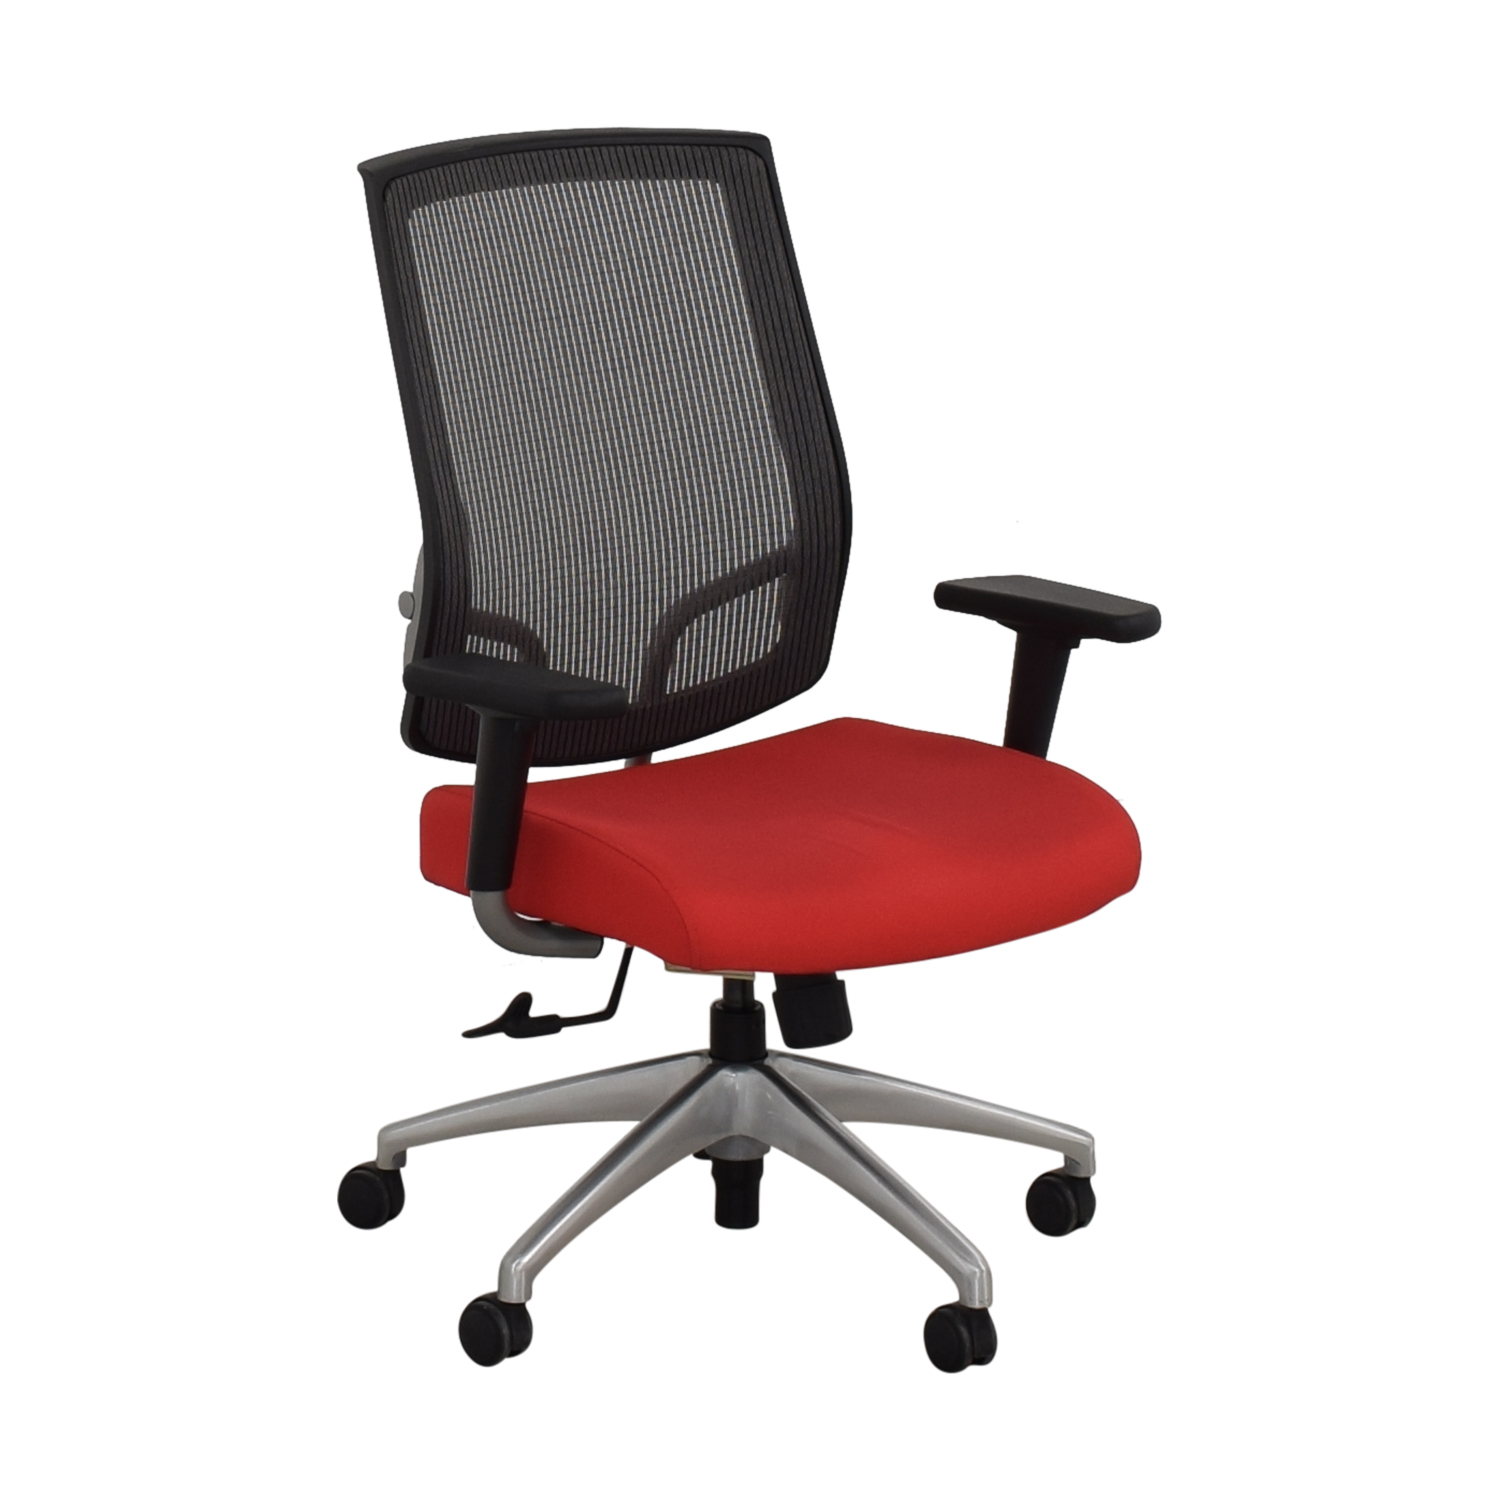 SitOnIt Focus High Back Office Chair SitOnIt